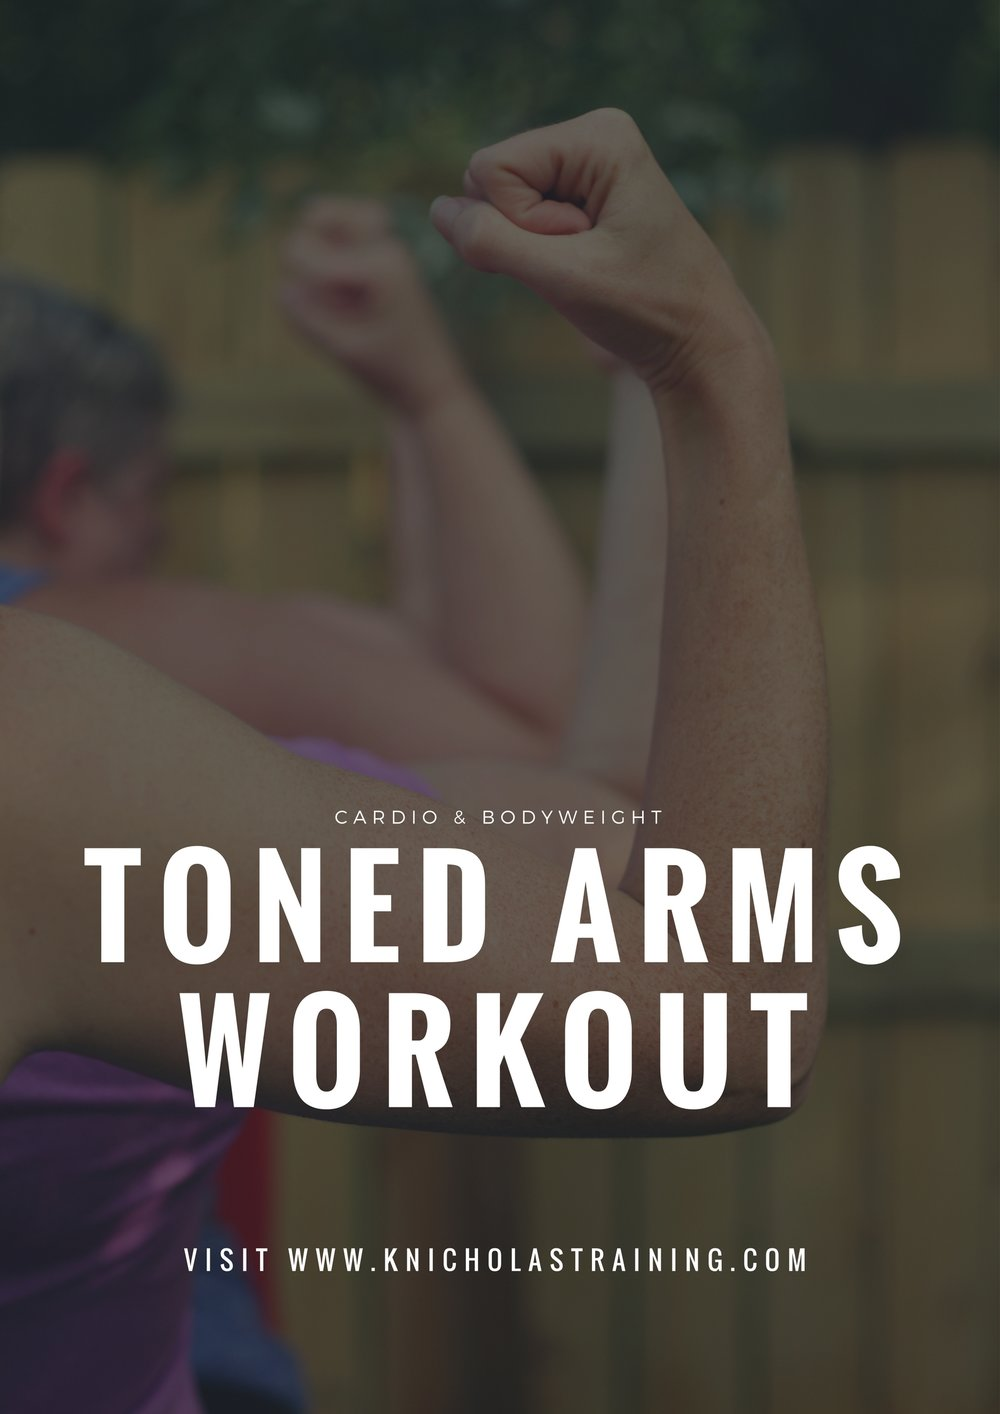 Toned Arms Workout.jpg